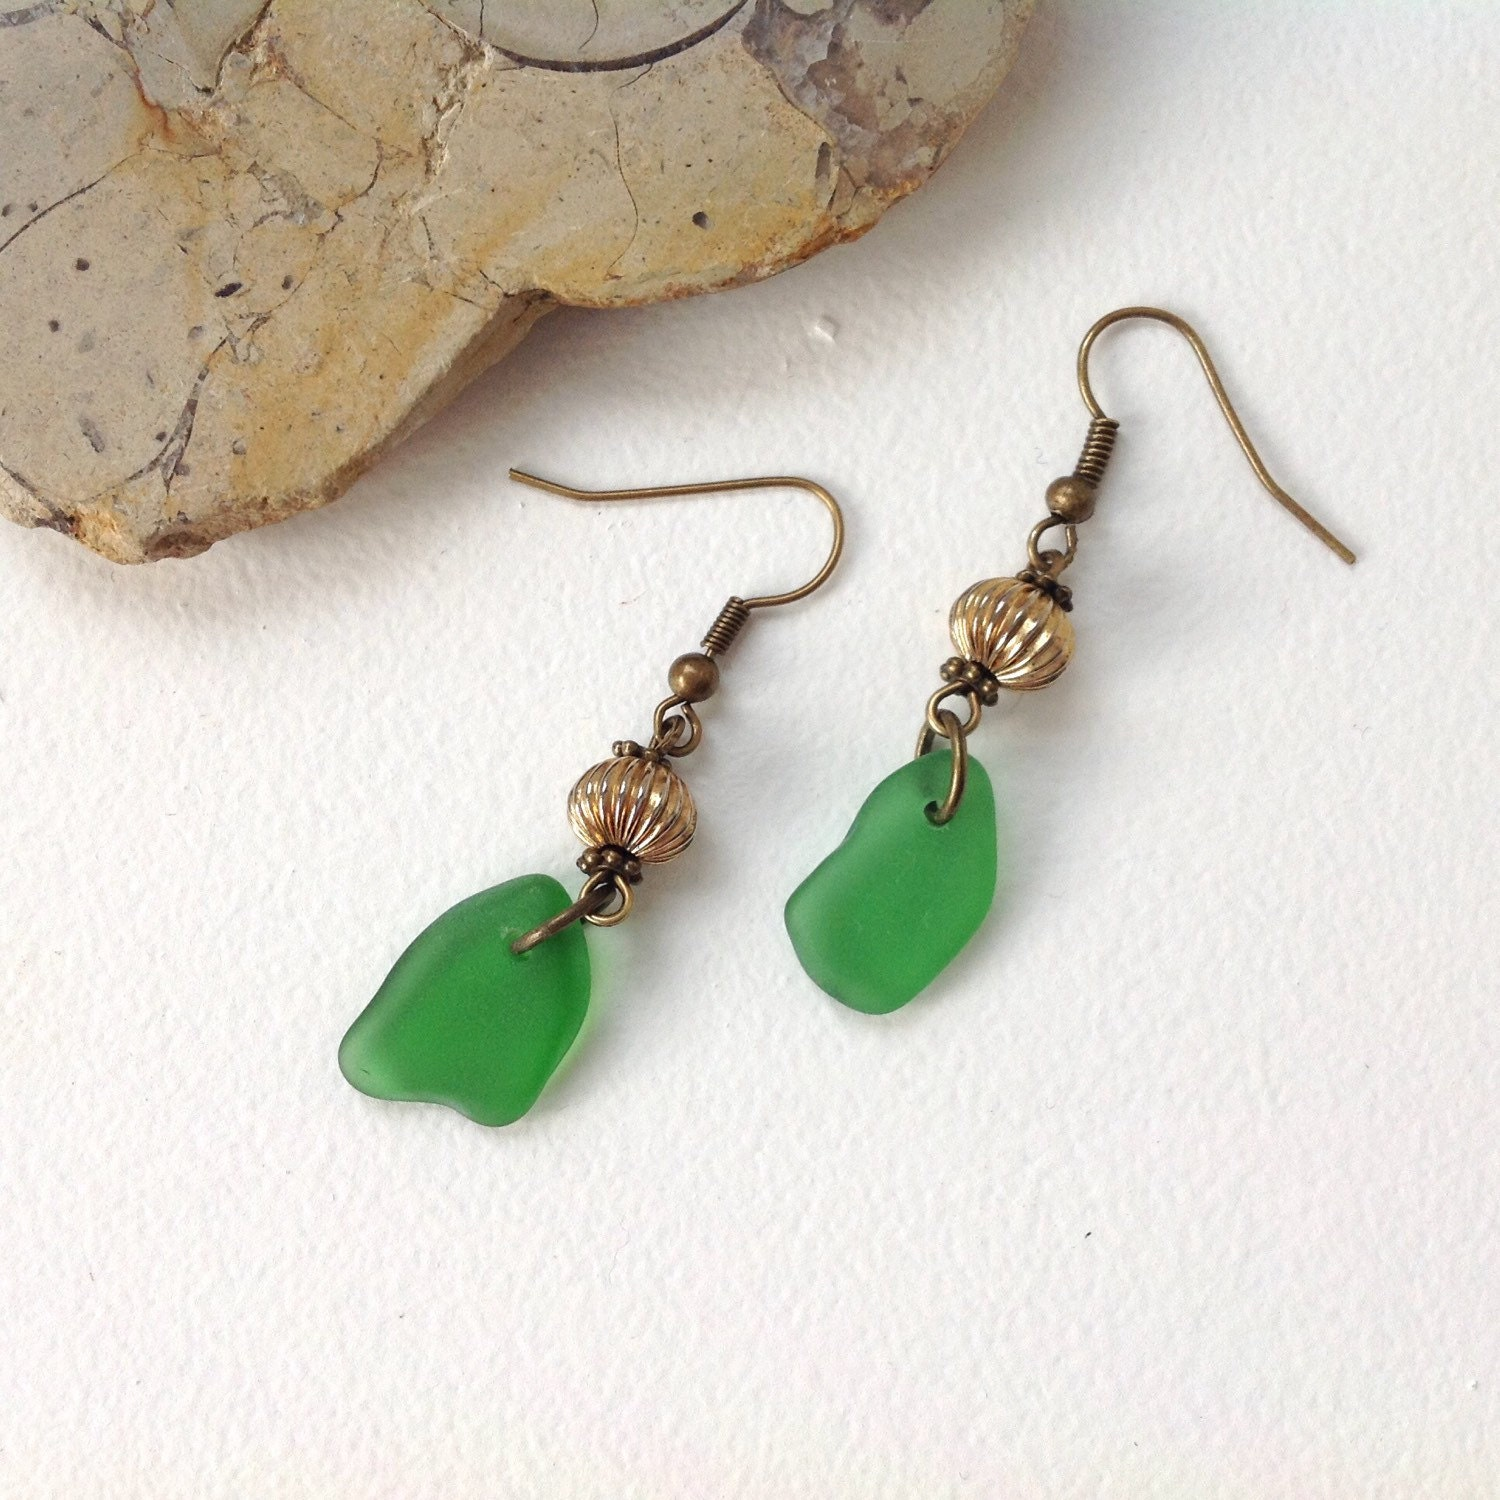 Sea glass earrings beach glass jewelry by QuirkyGirlWorkshop - photo#45